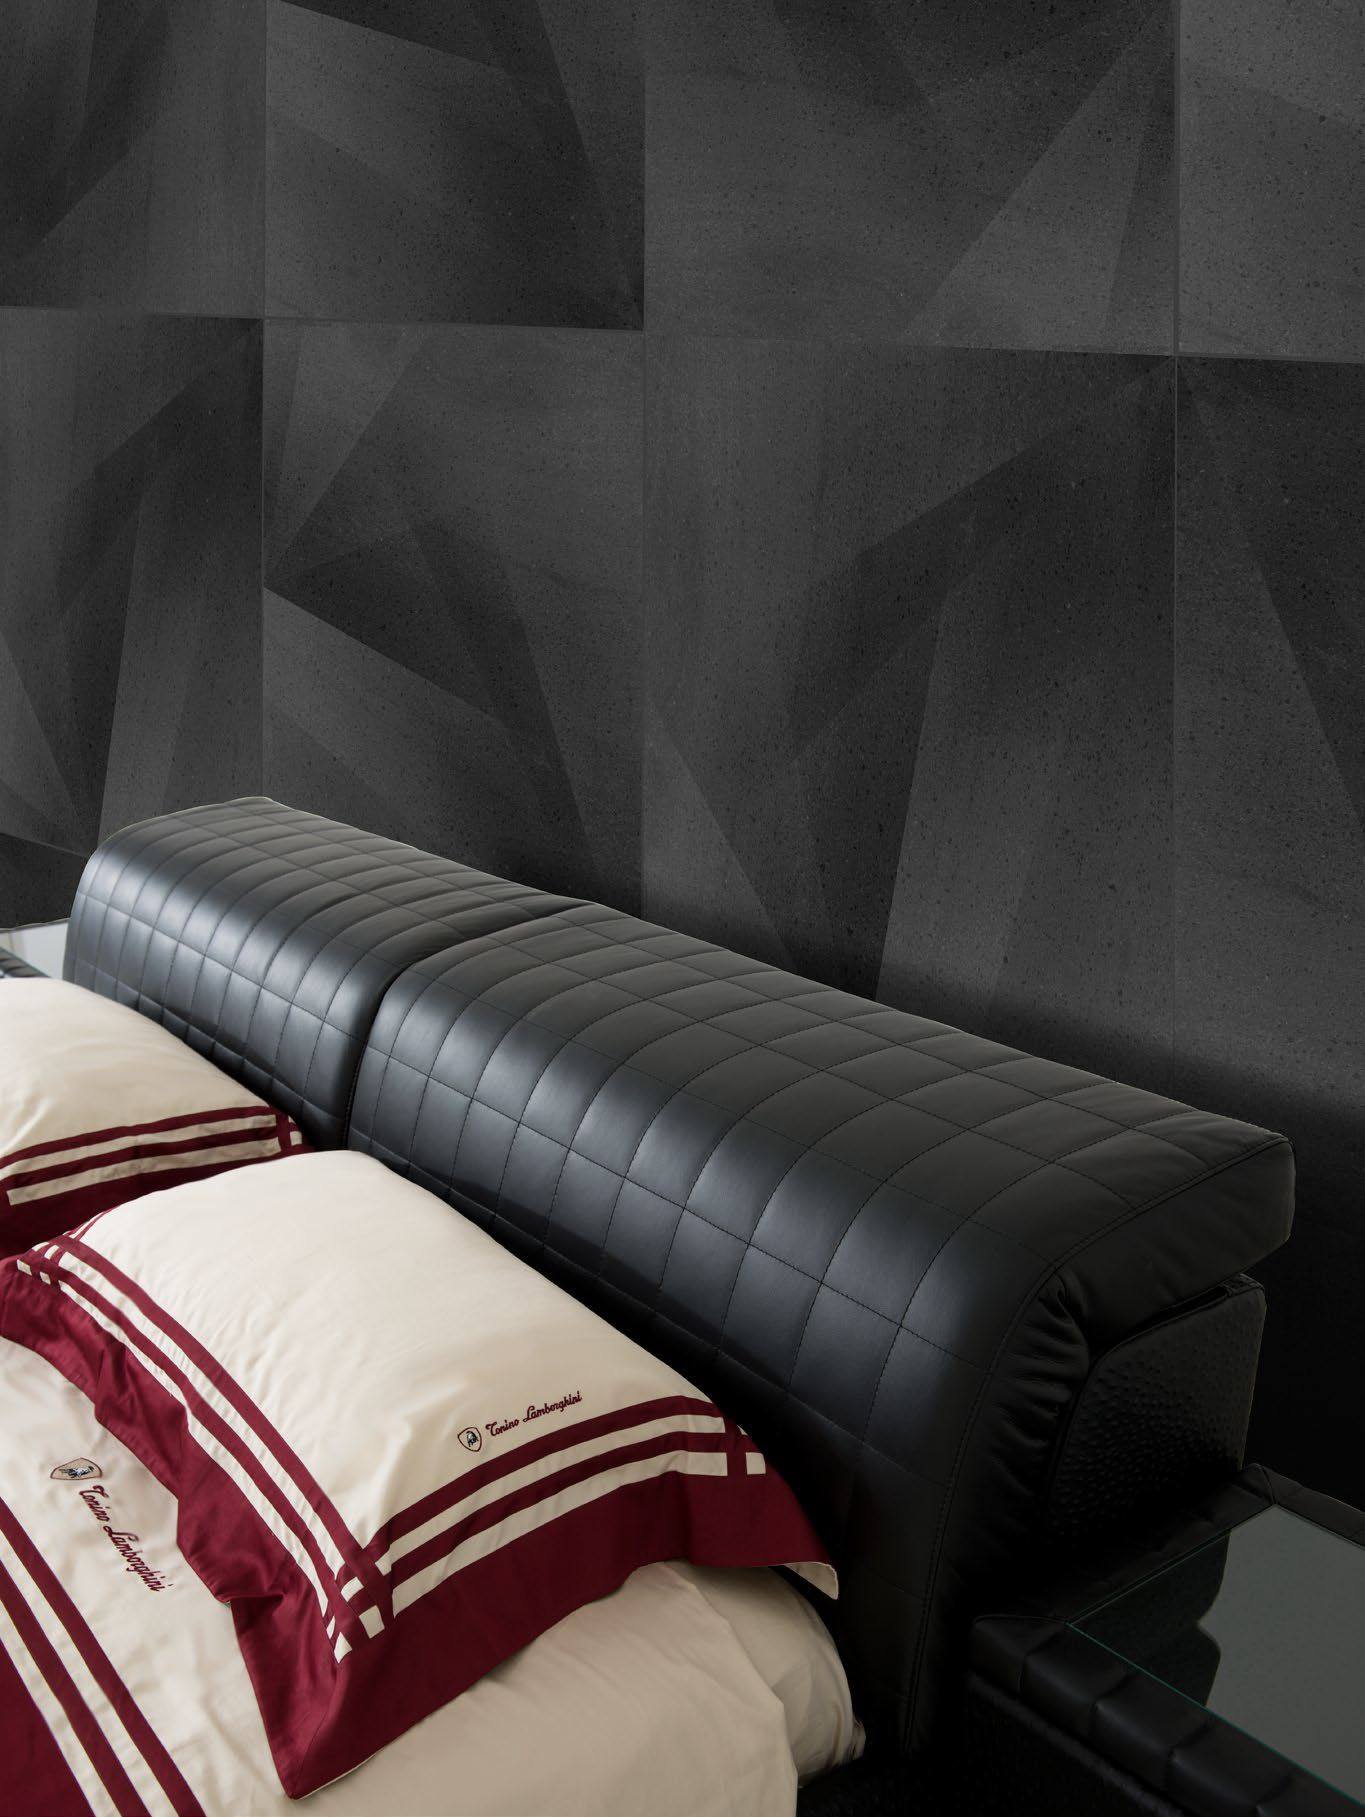 Download the catalogue and request prices of Brisbane | bed By tonino lamborghini casa, leather double bed with adjustable headrest, brisbane Collection